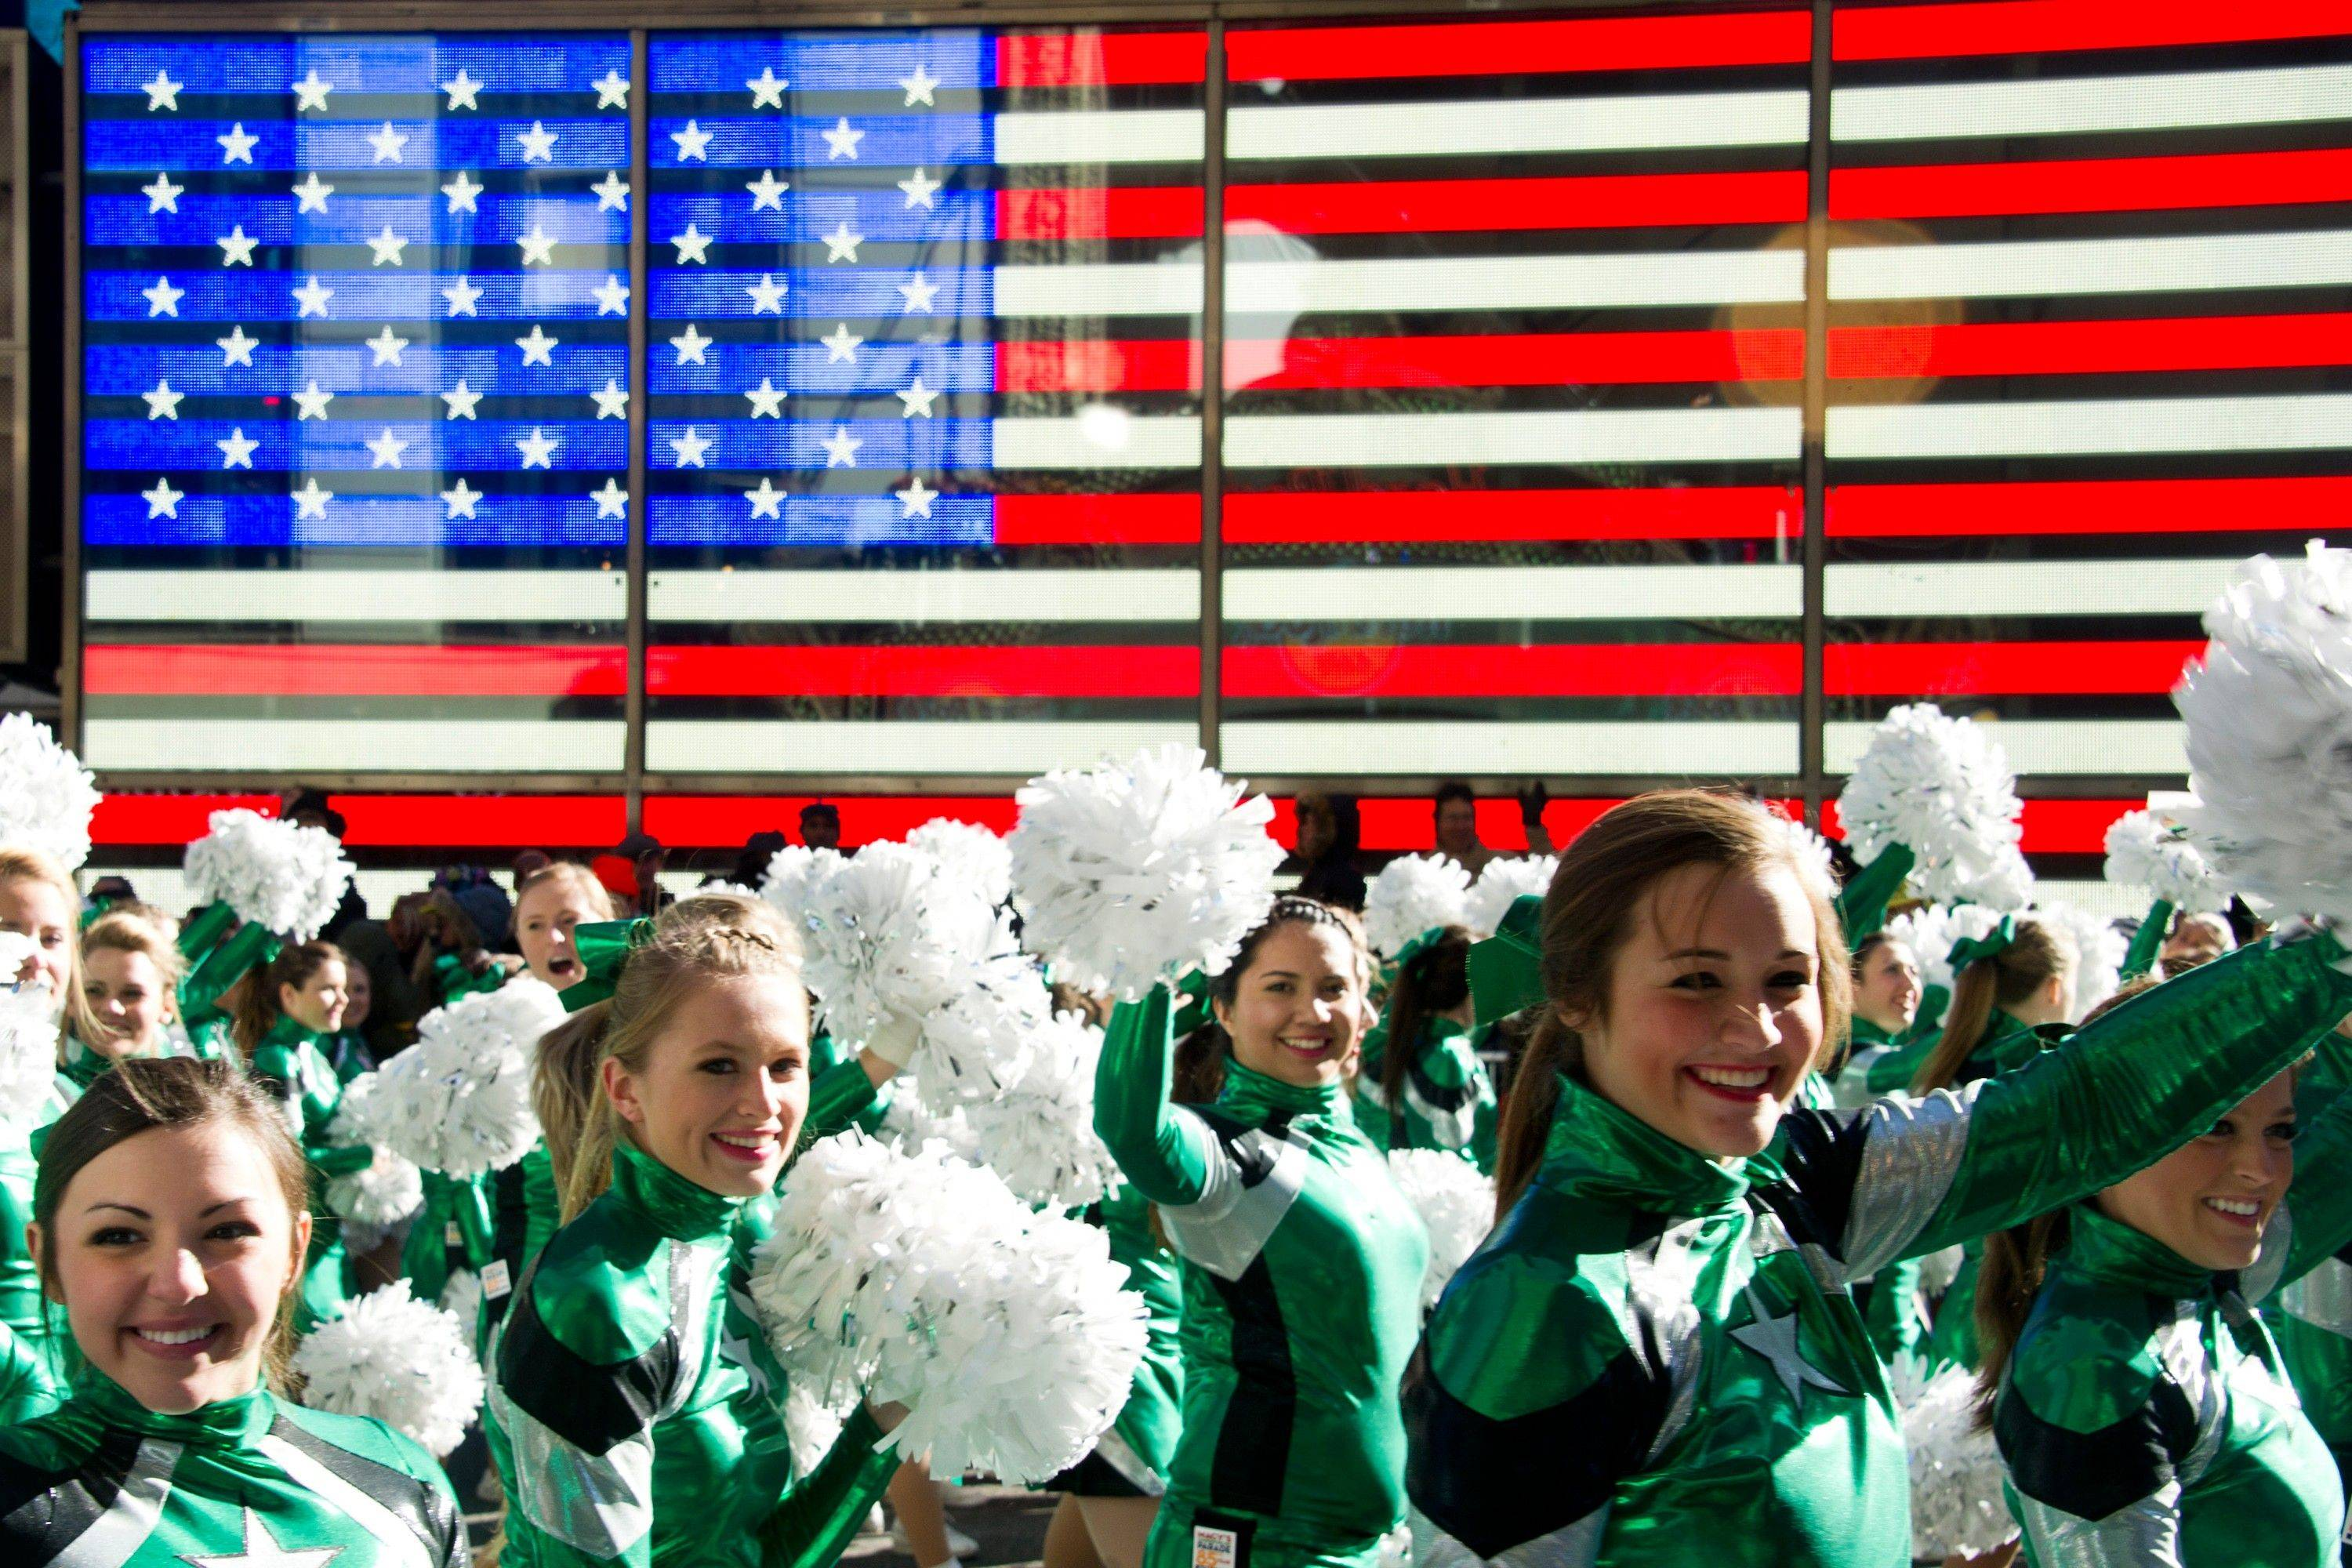 Cheerleaders march through Times Square in the Macy's Thanksgiving Day Parade in New York, Thursday, Nov. 24, 2011. A jetpack-wearing monkey and a freakish creation from filmmaker Tim Burton are two of the big new balloons that will make their inaugural appearances in front of millions of people at this year's parade.